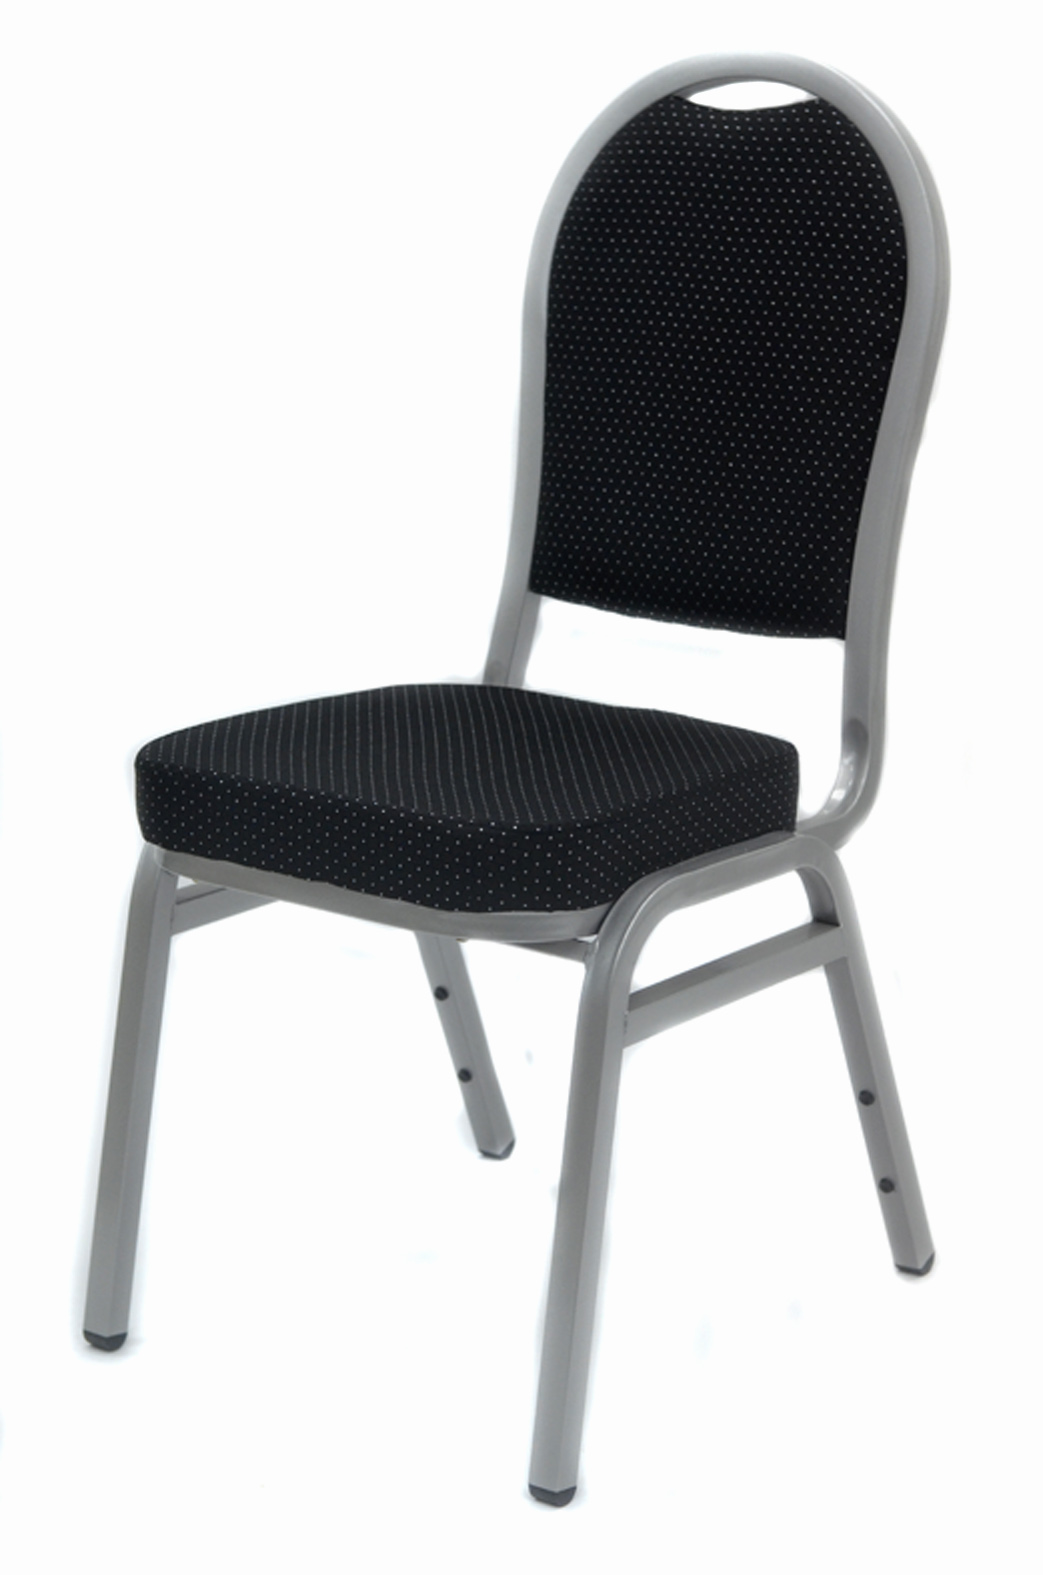 Silver and Black banqueting chairs for hire - BE Event Hire